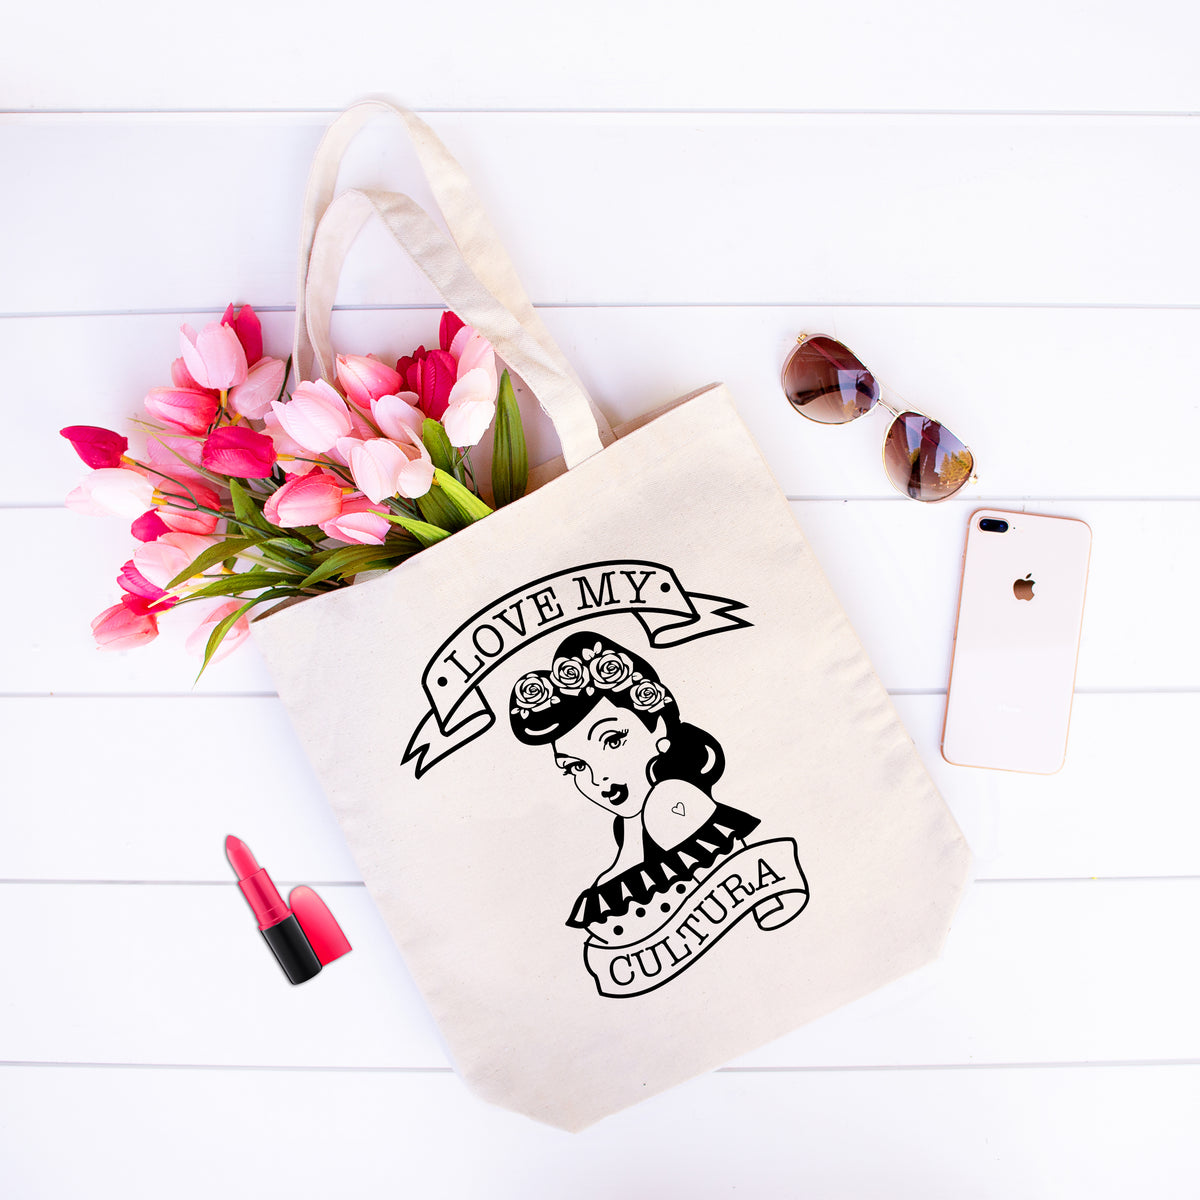 Love My Cultura - Latinx Pride Heavy Duty Natural Canvas Tote Bag with Bottom Gusset - Mi LegaSi